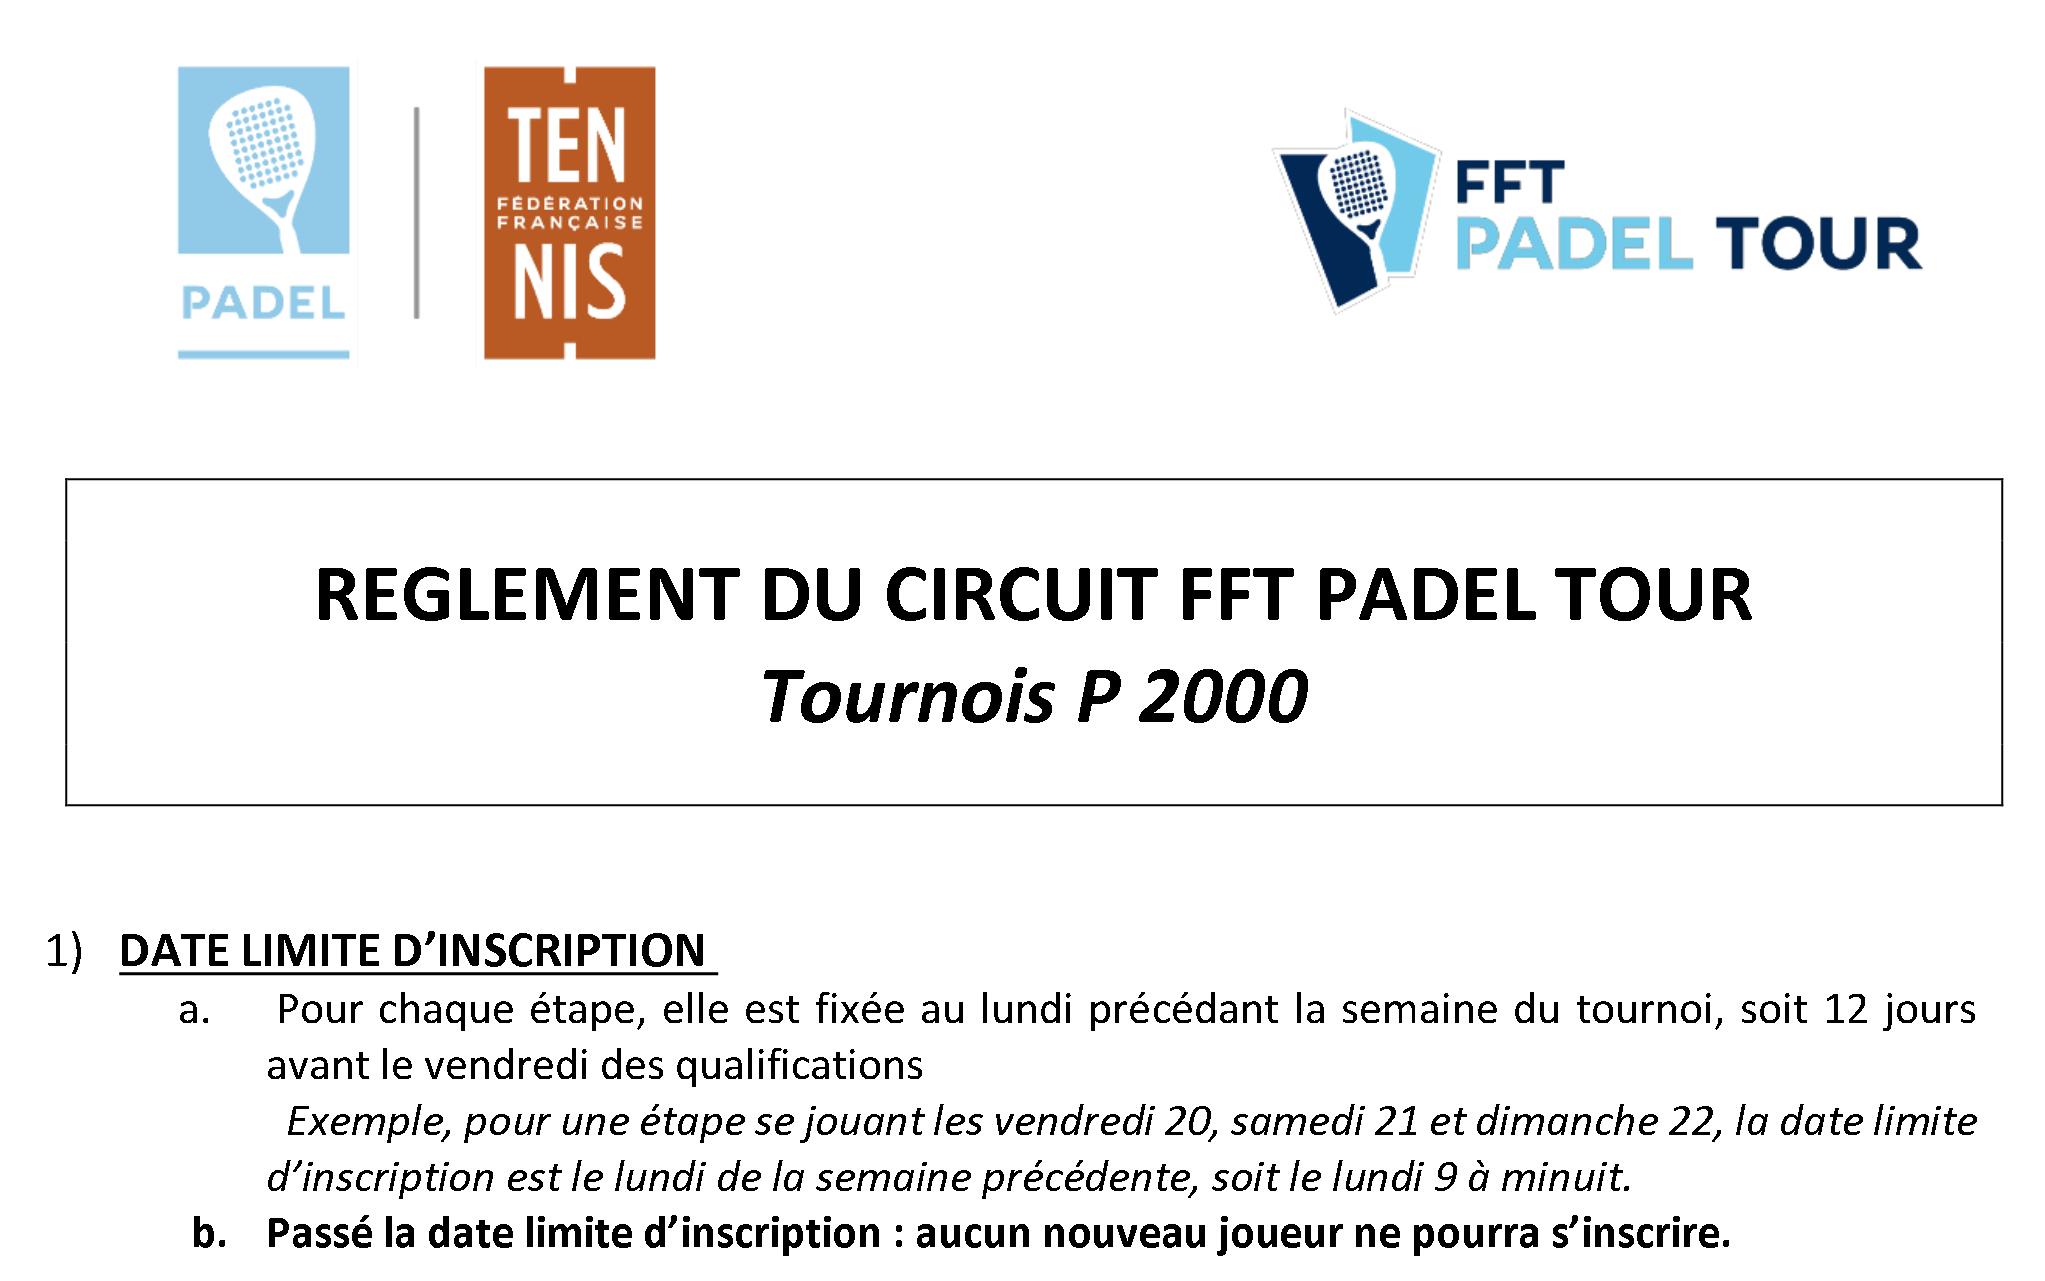 P2000 specifications - FFT PADEL TOUR